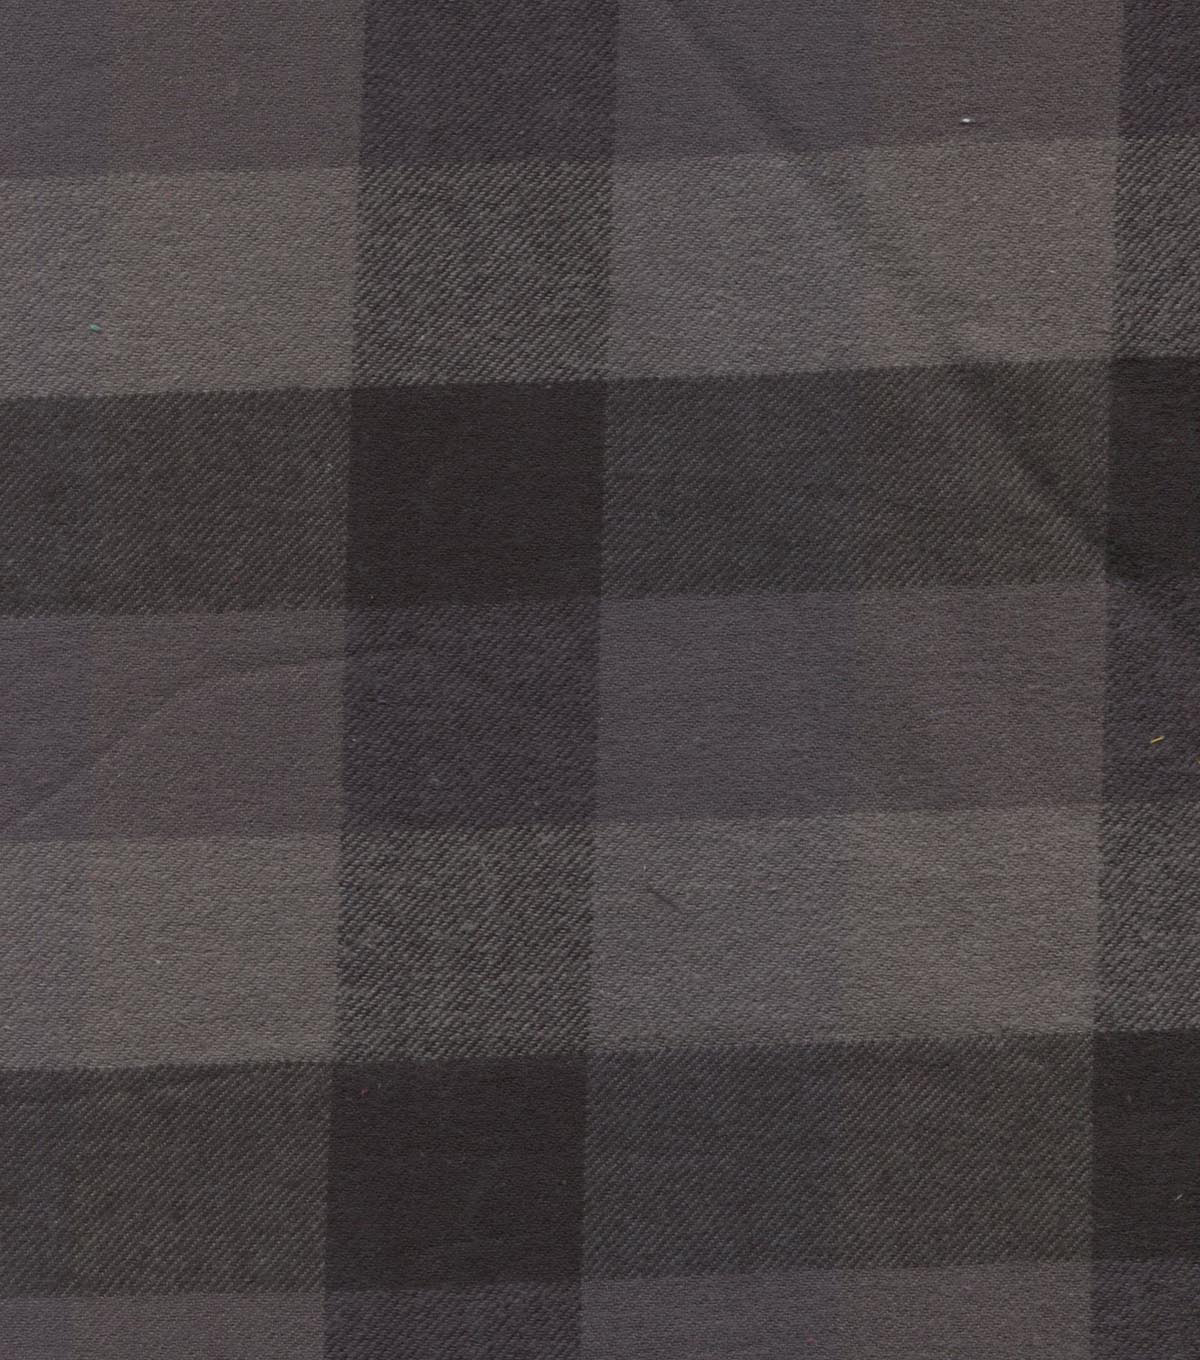 Shirtings Flannel Fabric-Black Grey Buffalo Plaid